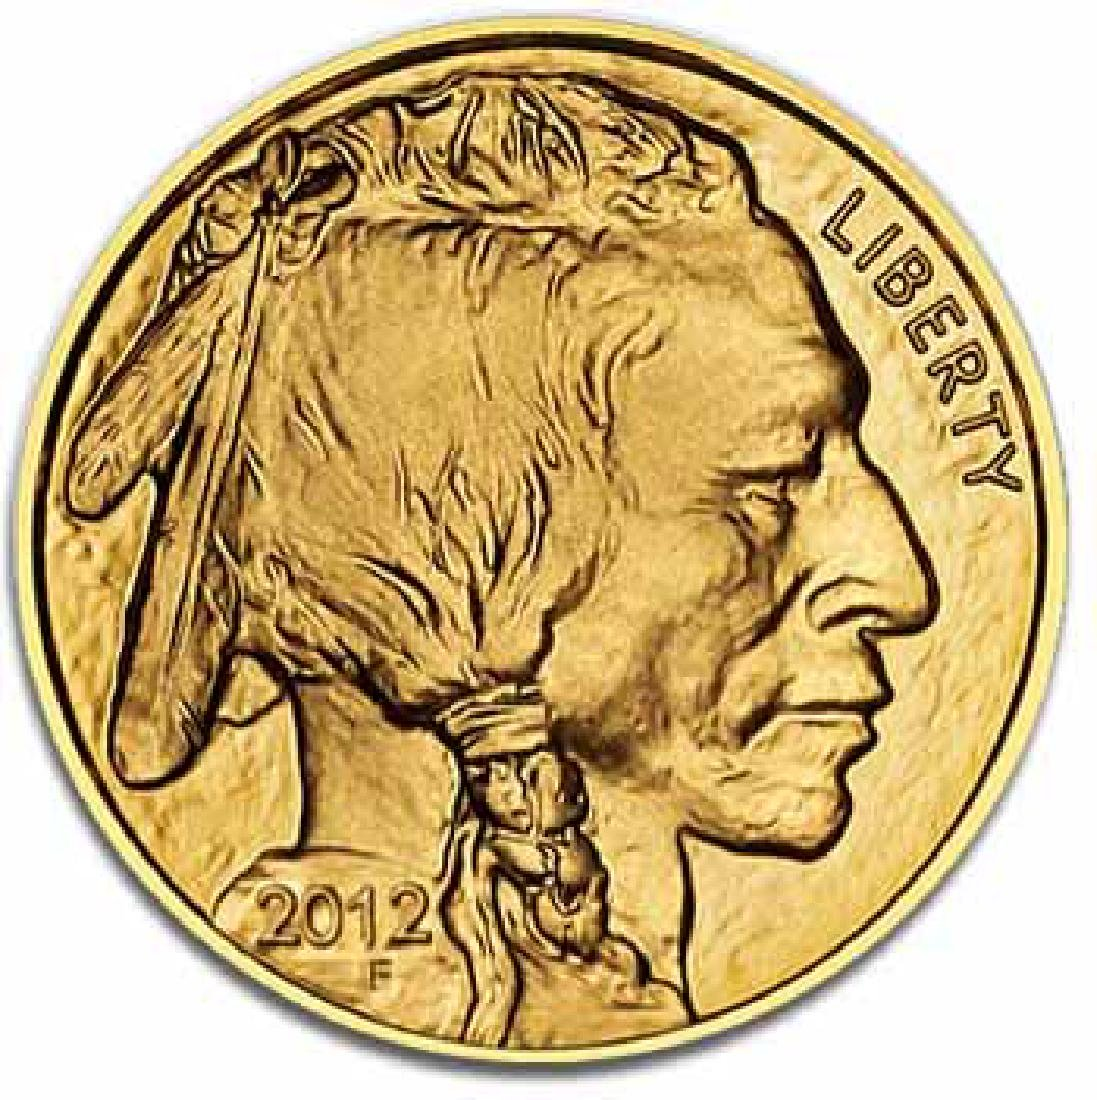 Uncirculated Gold Buffalo Coin One Ounce (Random Year)